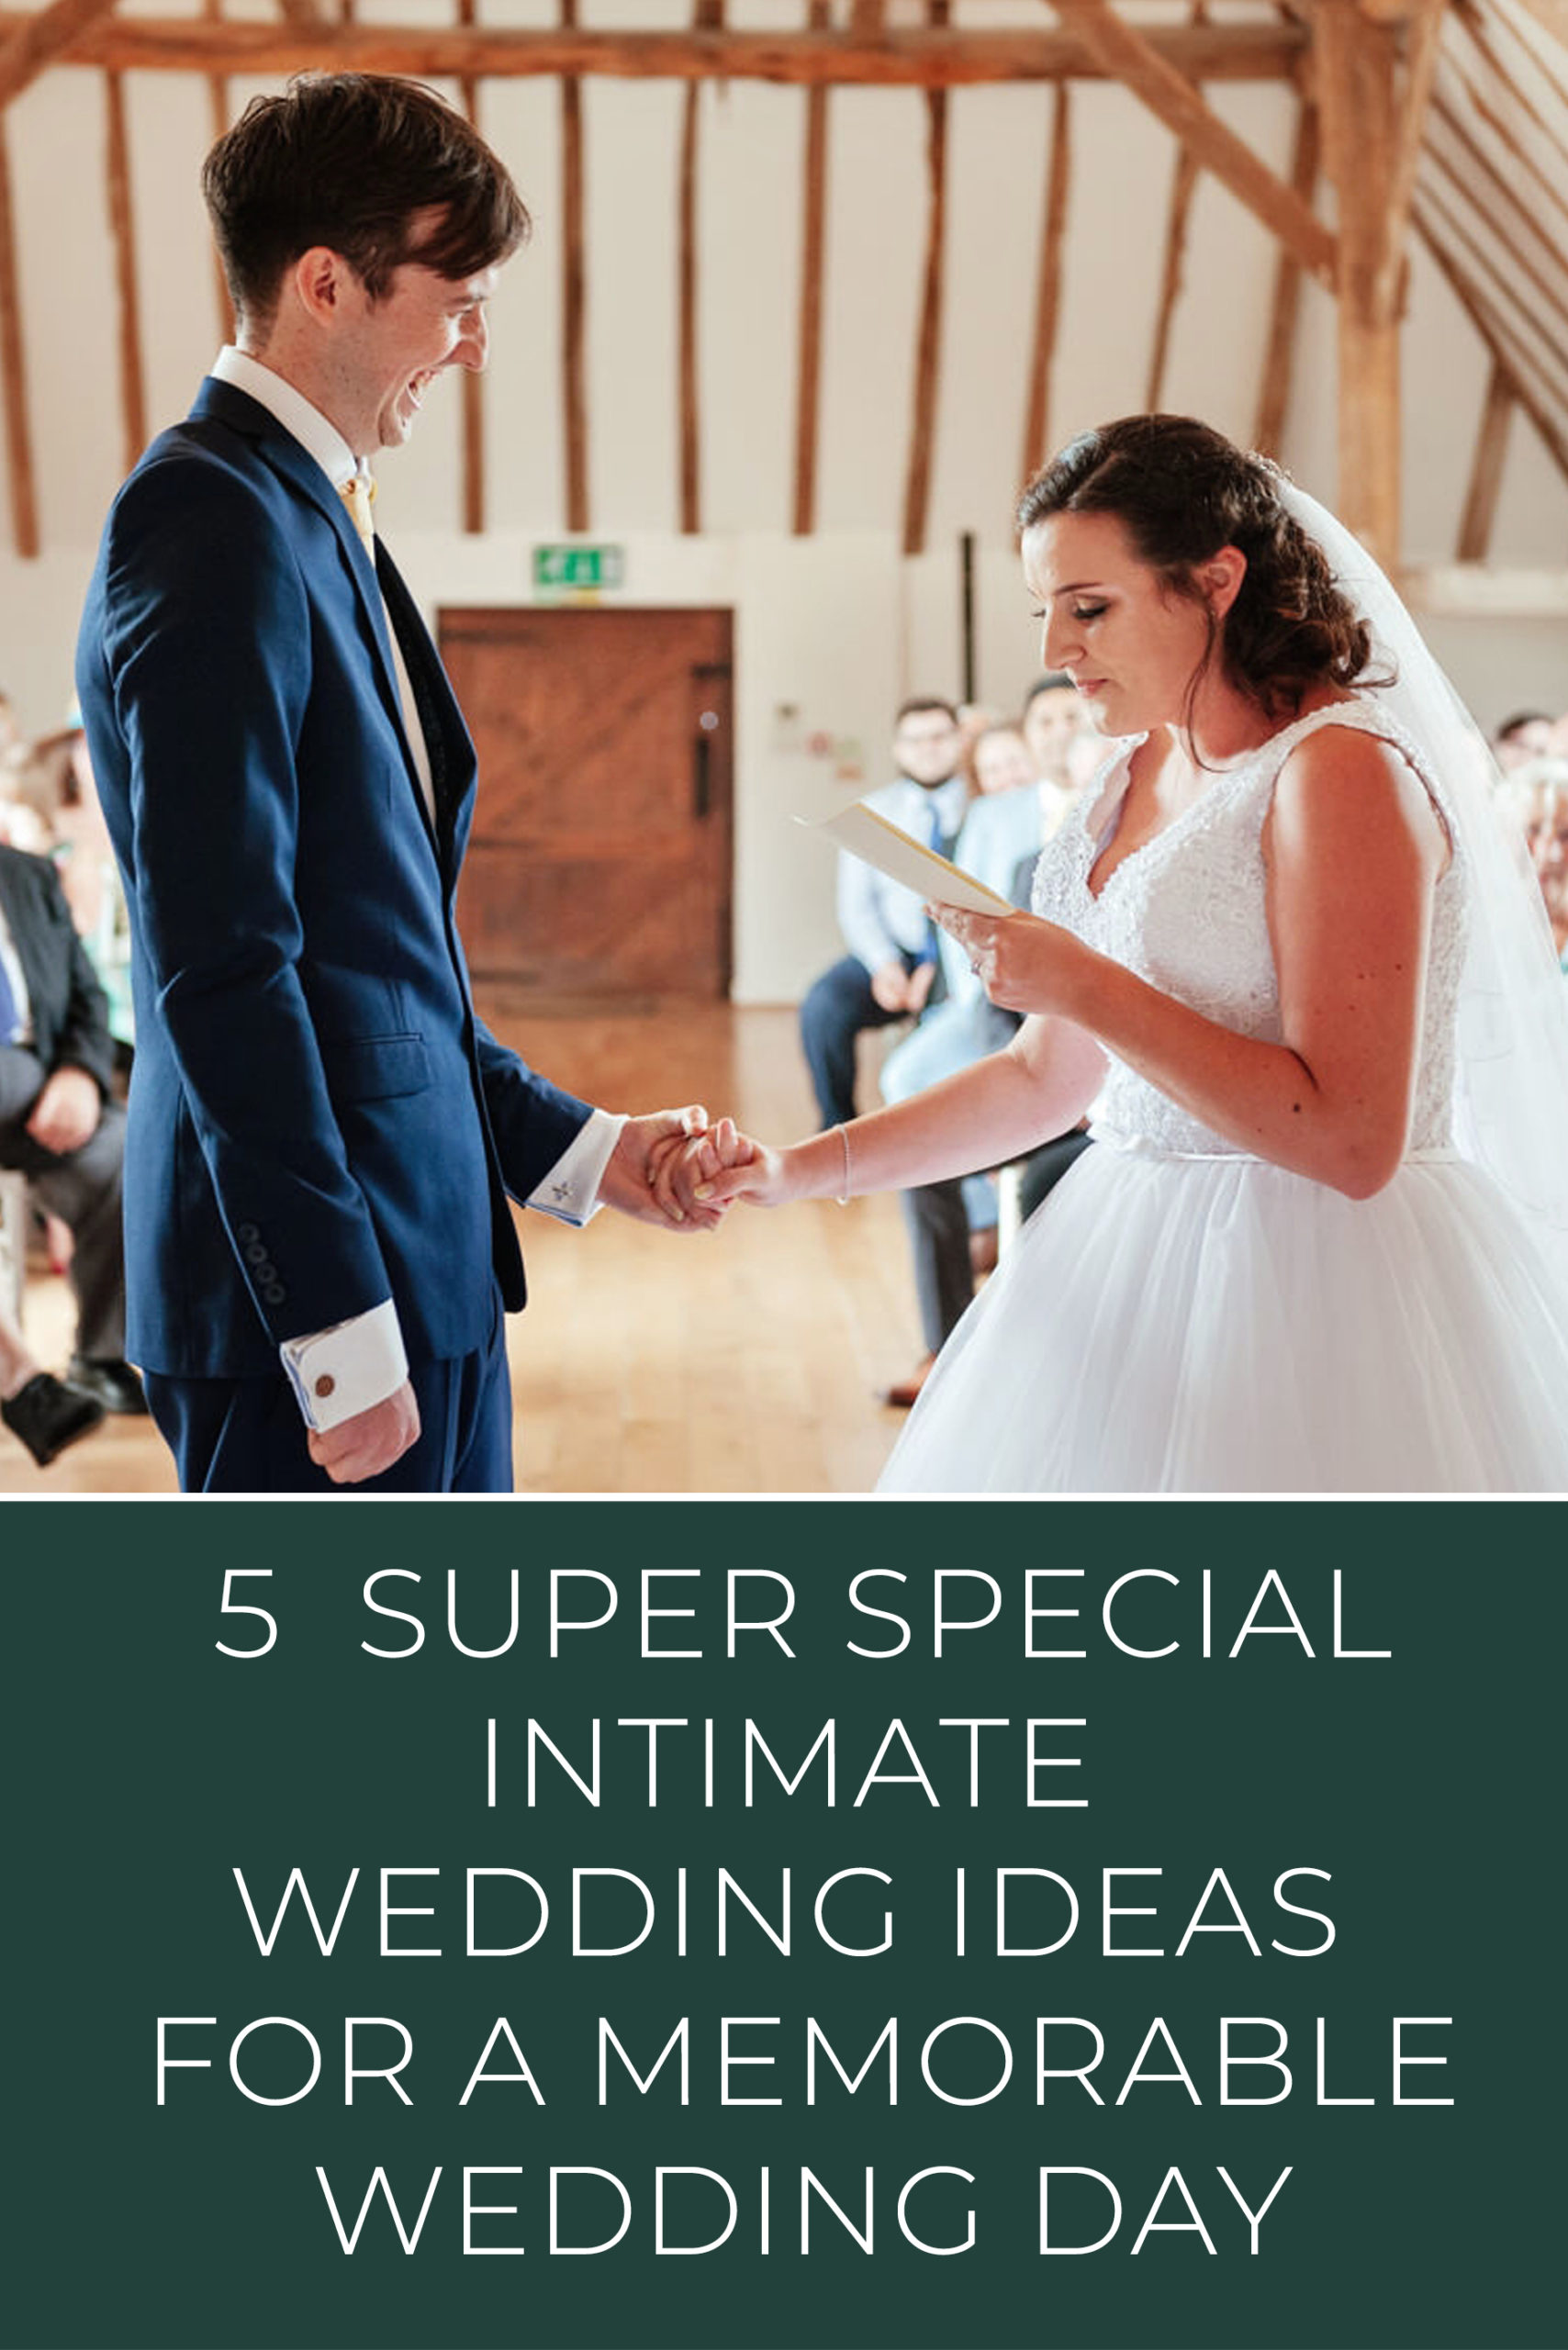 5 Super Special Intimate Wedding Ideas for a Memorable Wedding Day